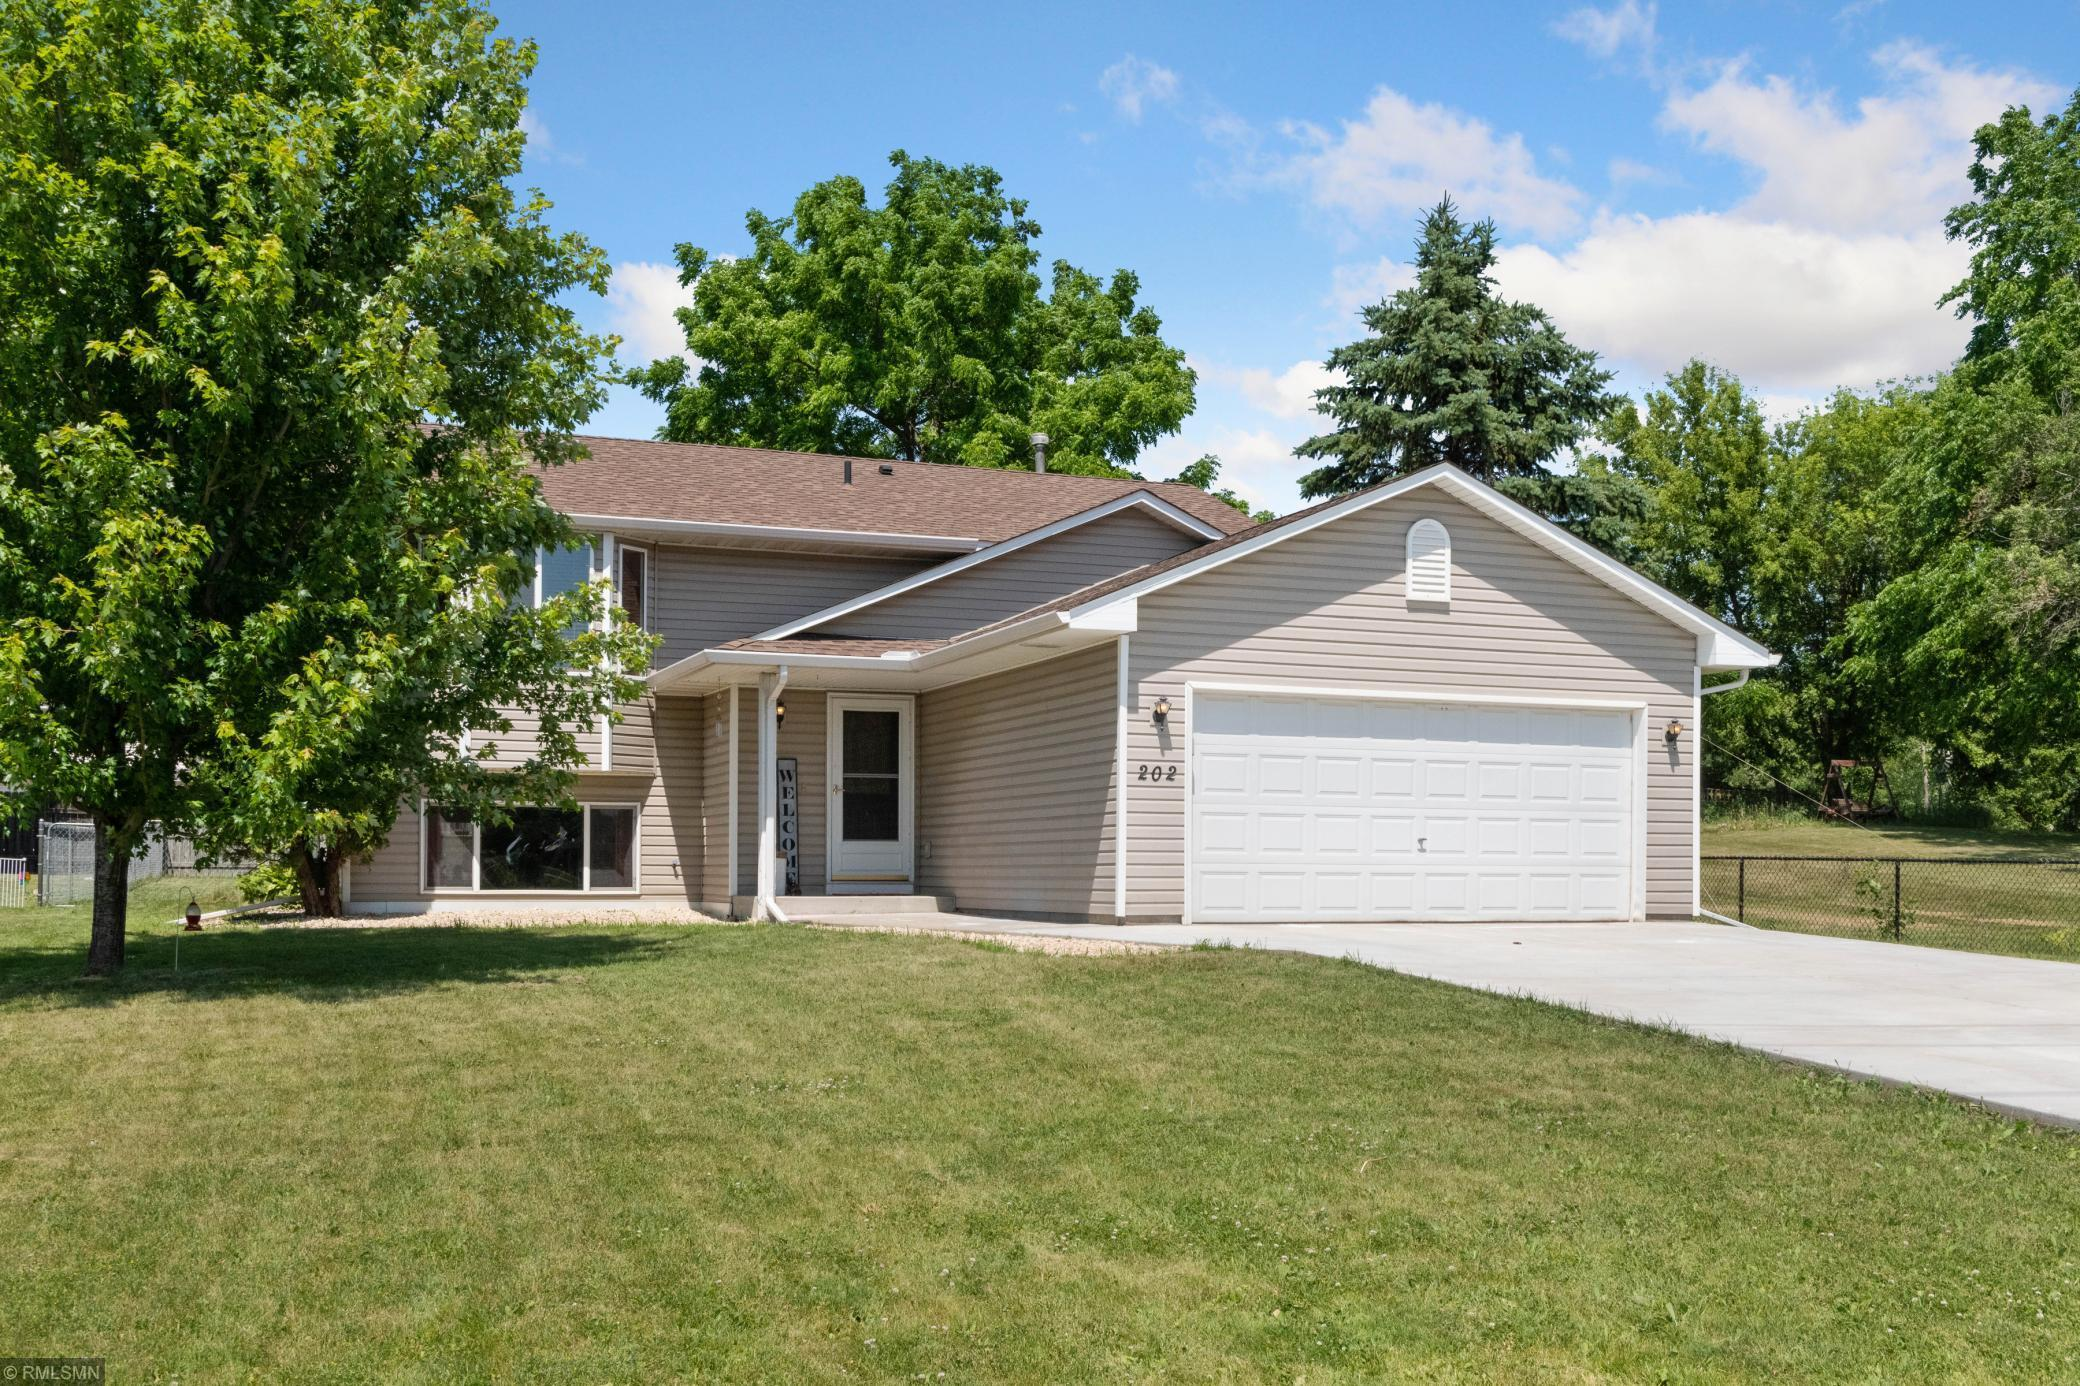 202 Benton E Property Photo - Cologne, MN real estate listing